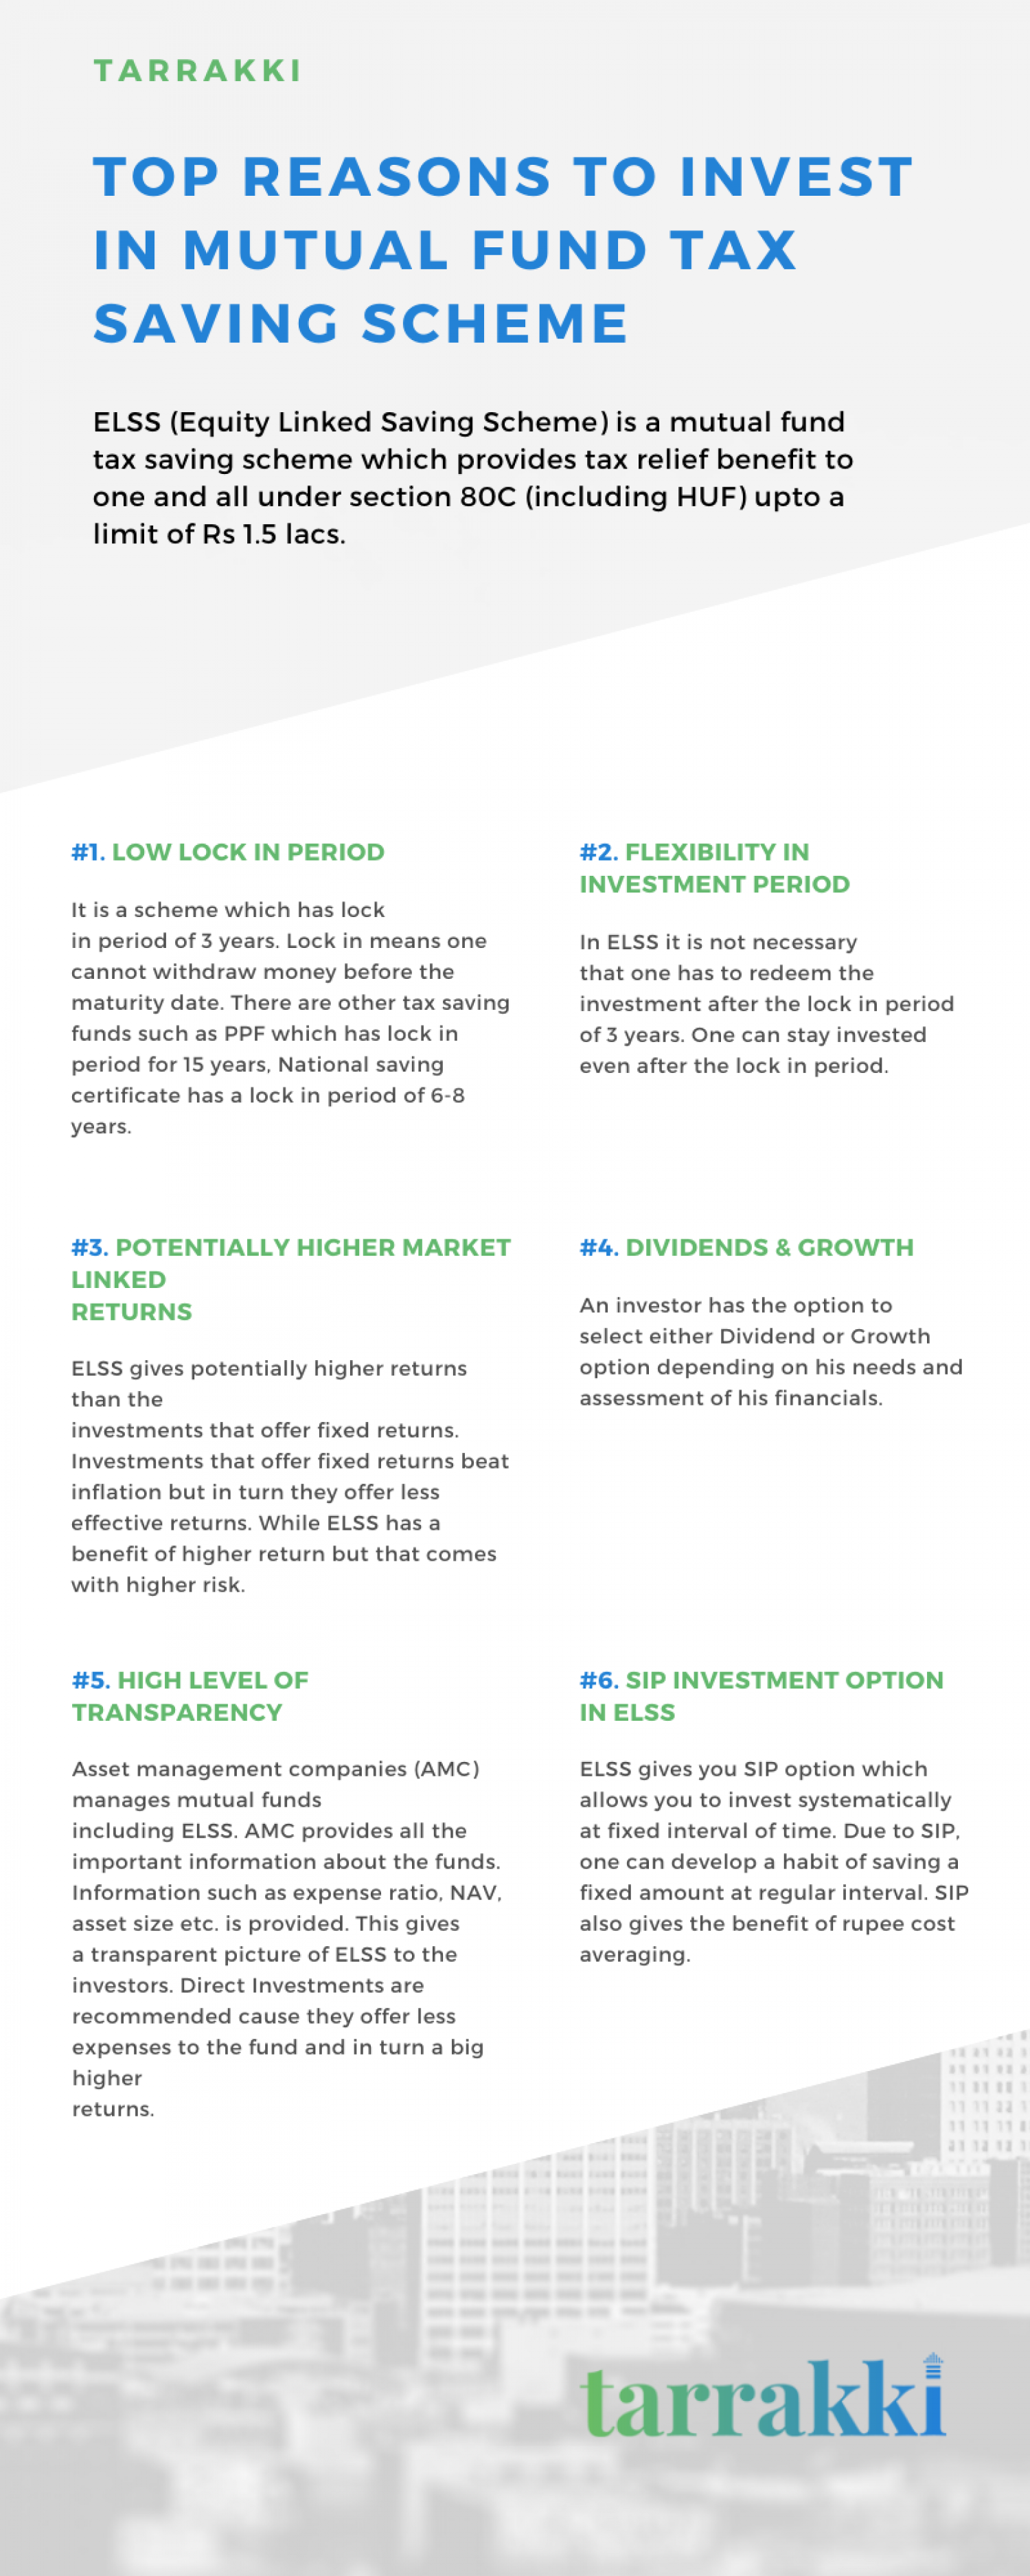 Top reasons to invest in Mutual fund tax saving scheme  Infographic